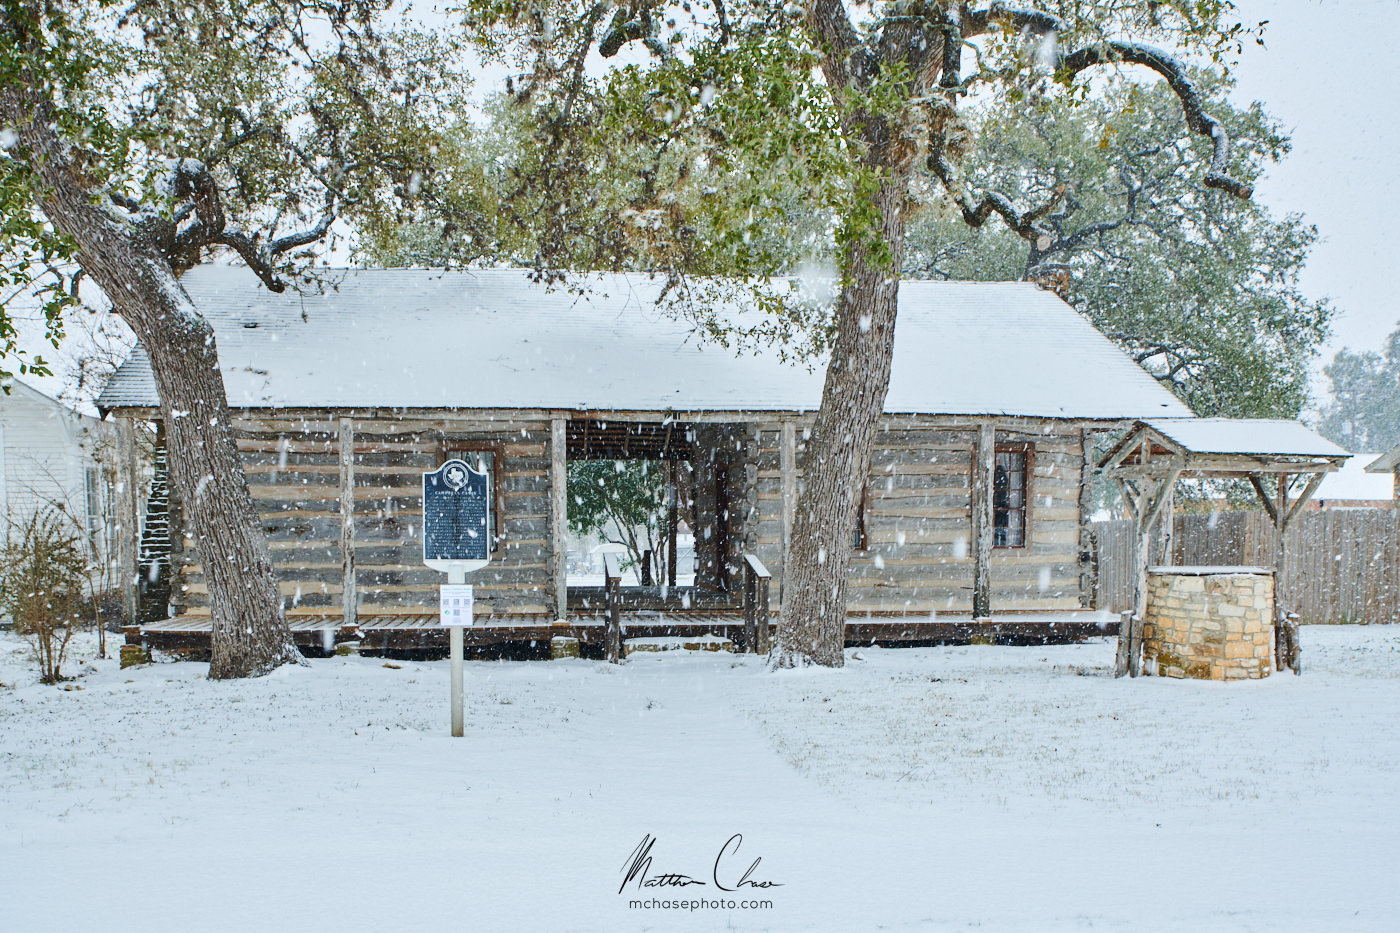 A wintry image of the Campbell-Hoerman Log Cabin.